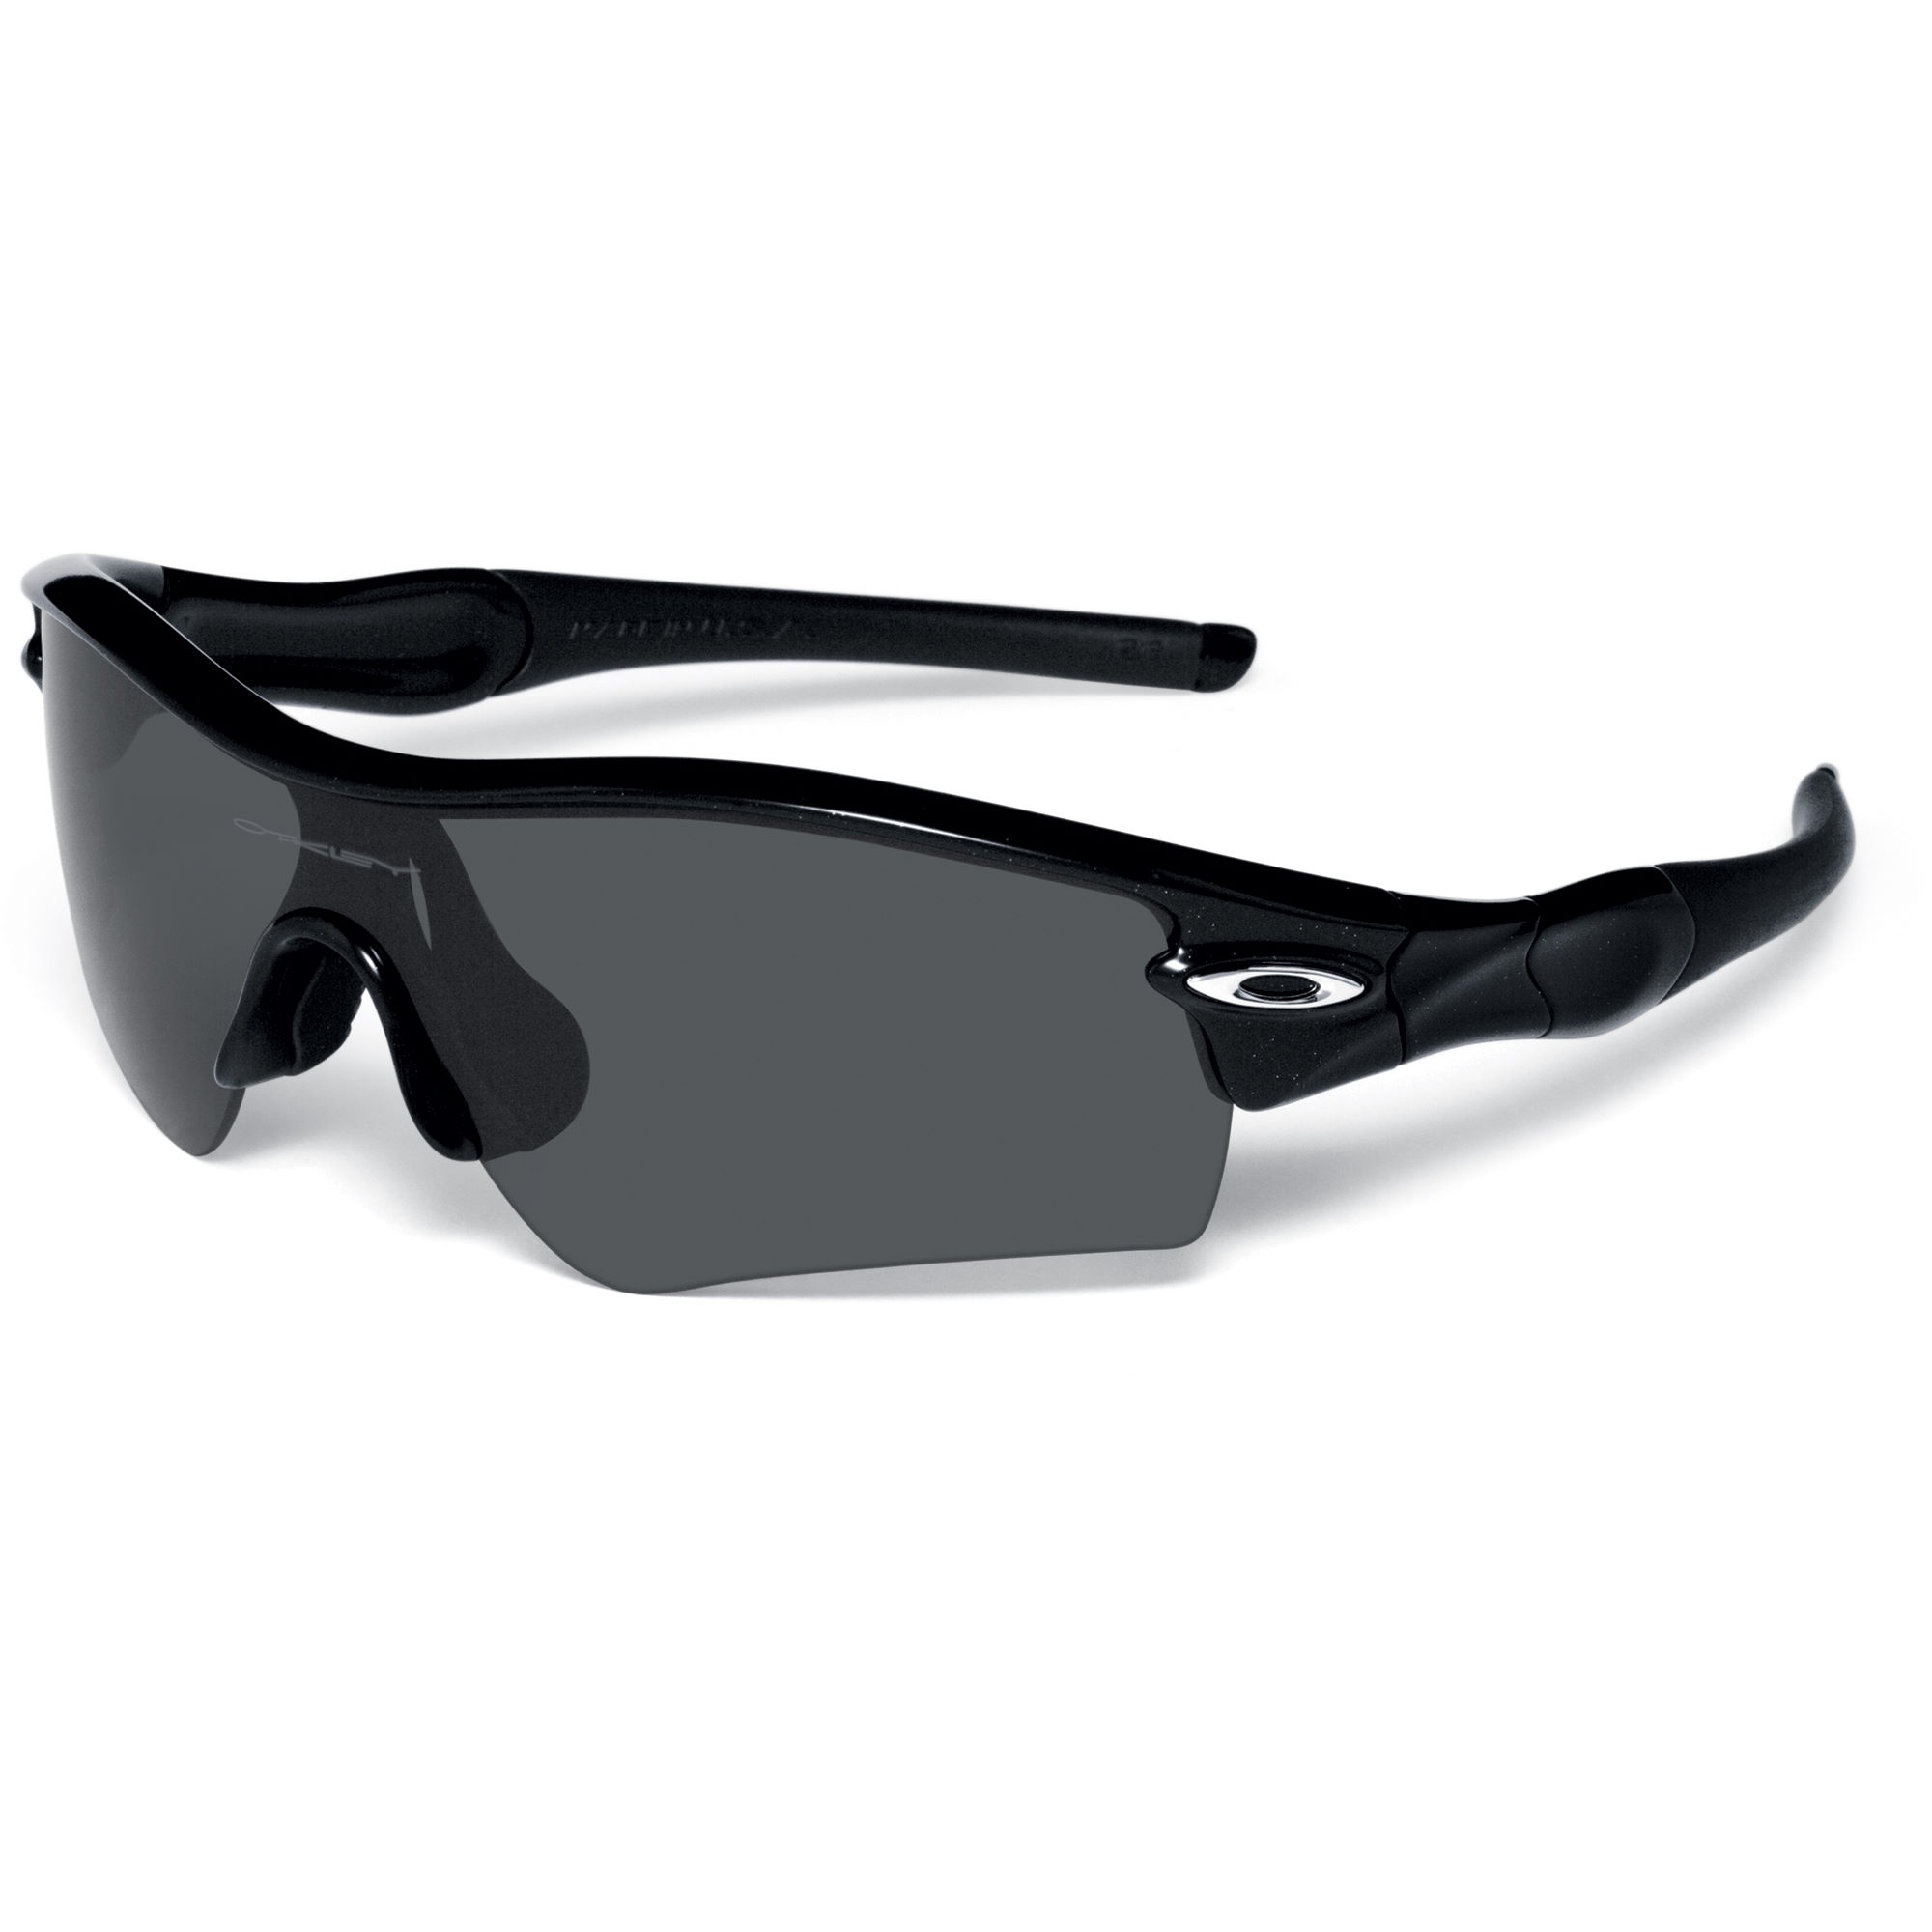 vmfhm Wiggle | Oakley Radar Path Sunglasses | Performance Sunglasses